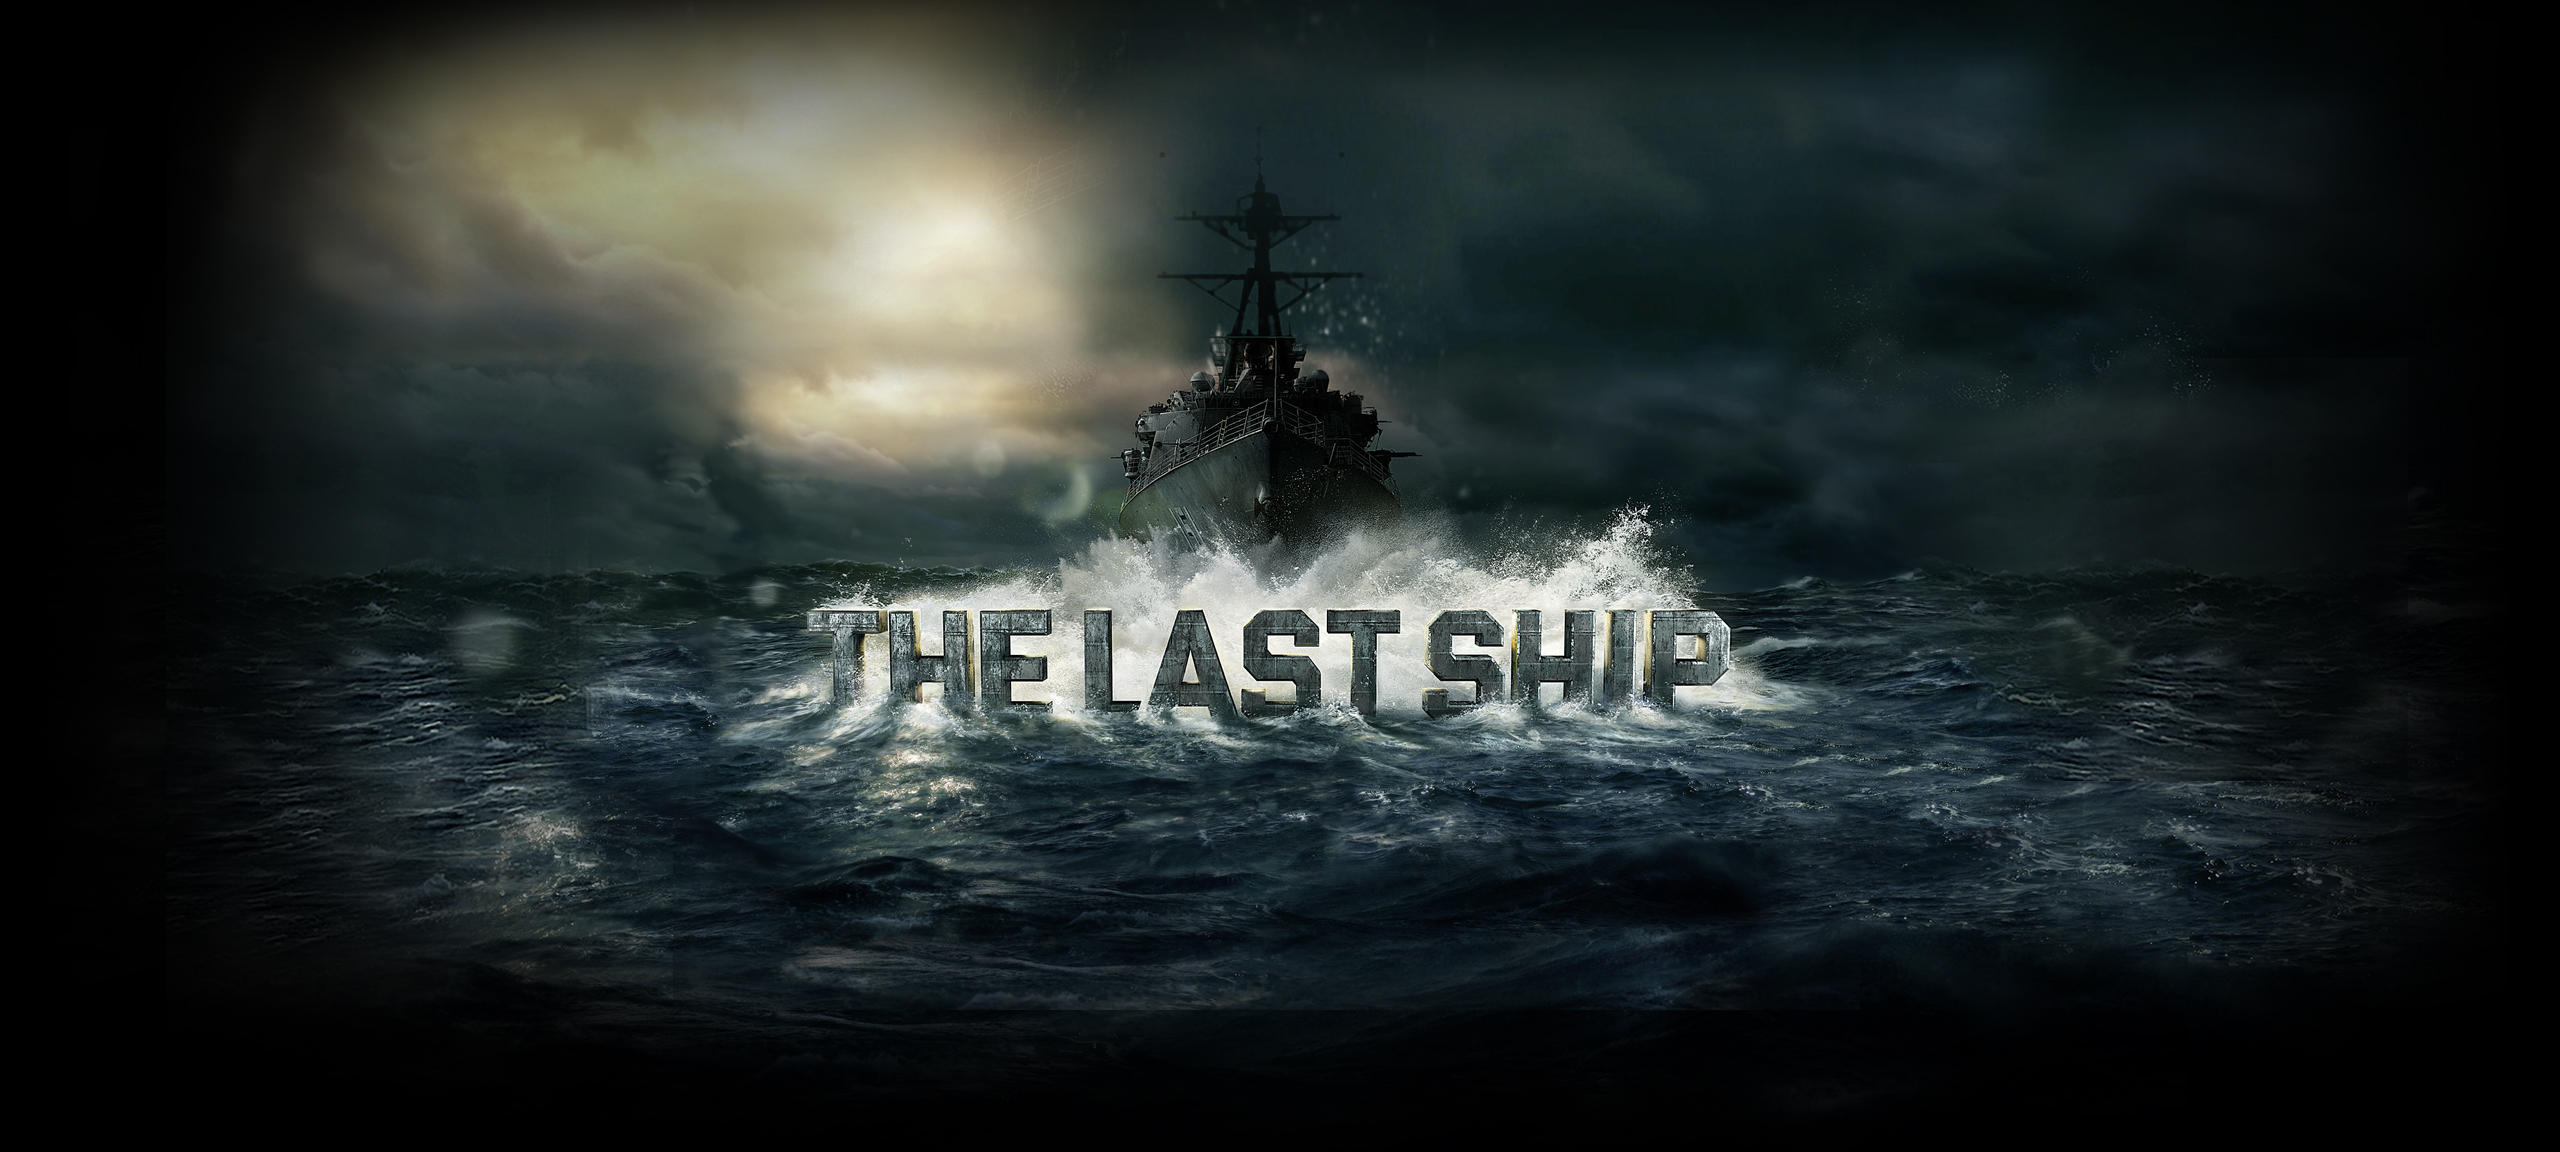 08_14_CABECERA_YOUTUBE_THE_LAST_SHIP_TNT